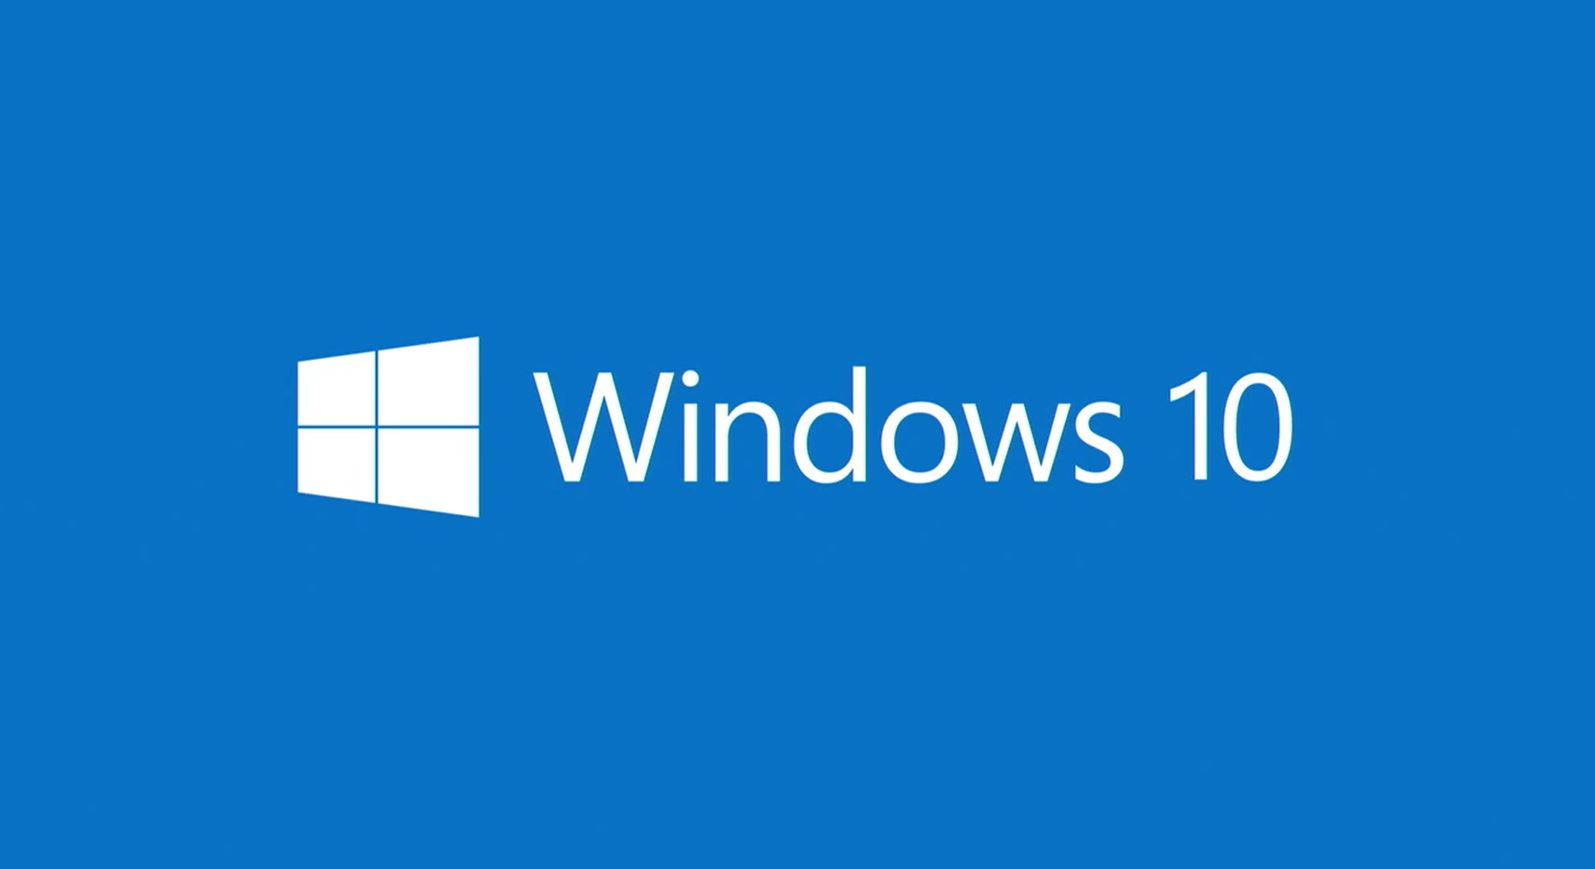 Microsoft releases new windows 10 build 9879 isos for Microsoft win10